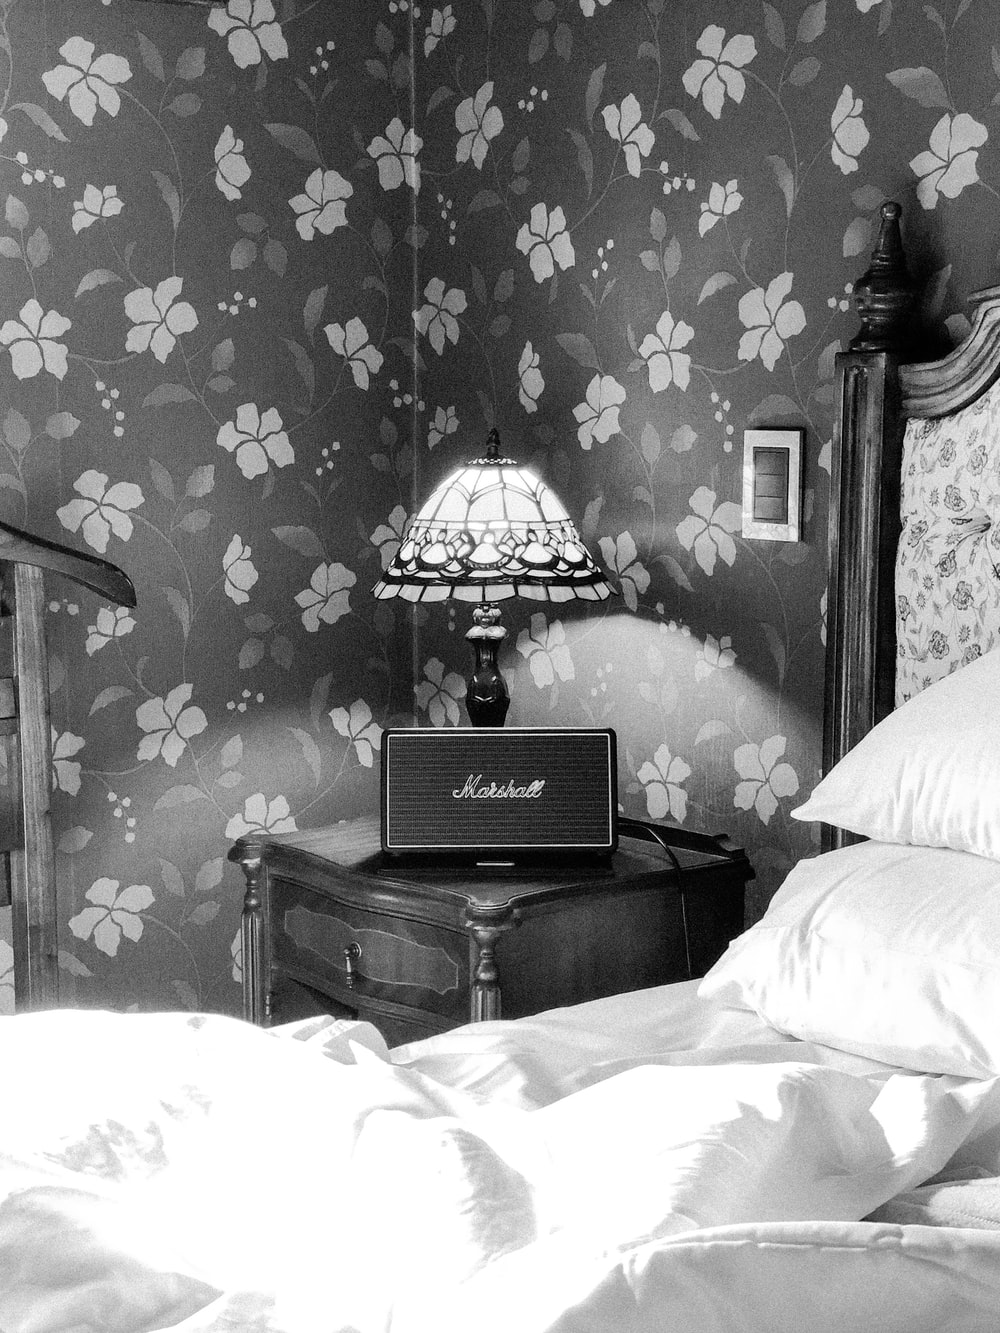 Bedroom Lamps Pictures | Download Free Images on Unsplash